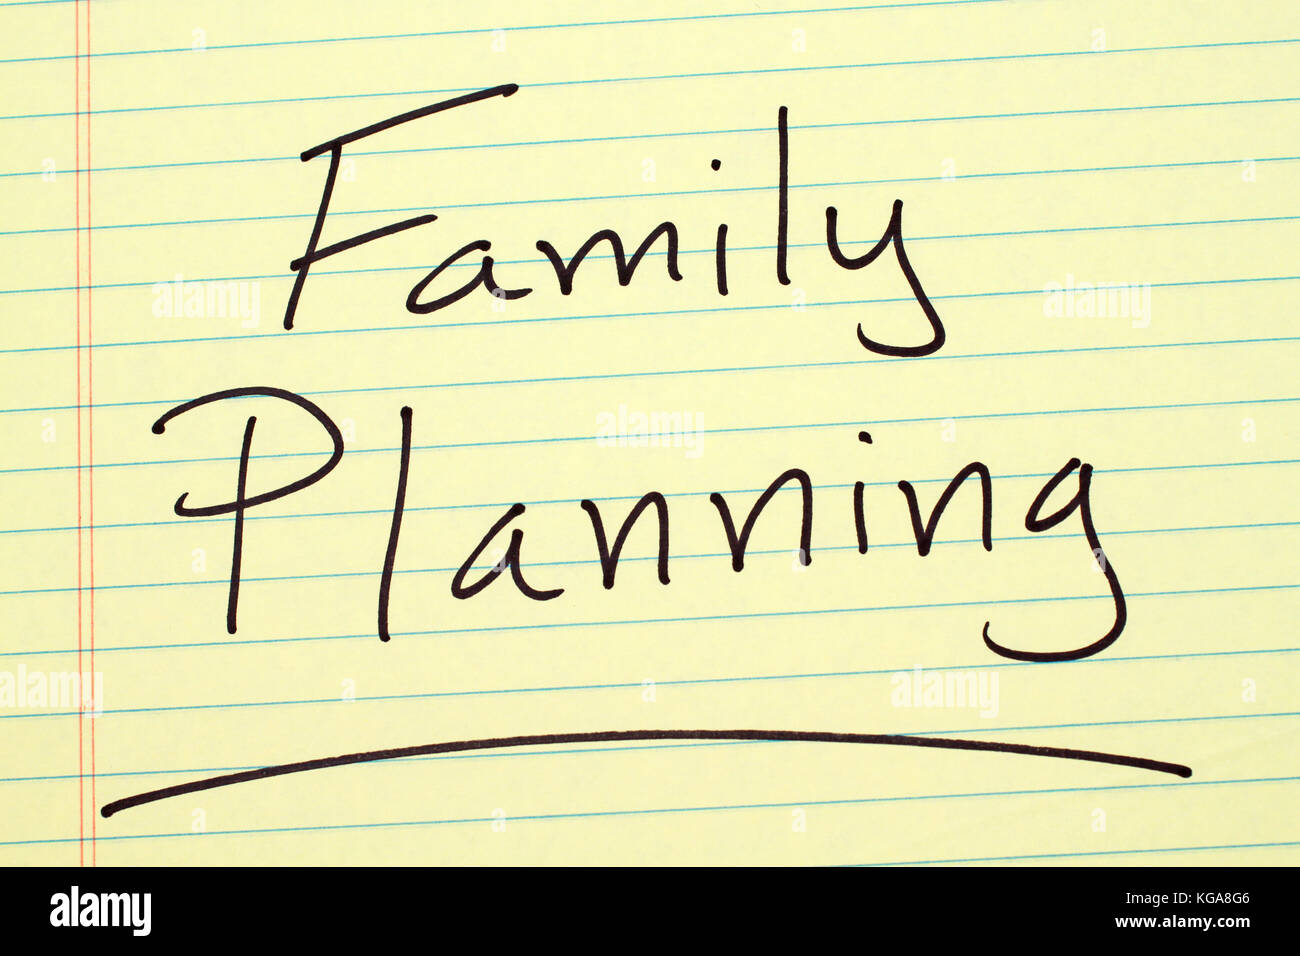 The word 'Family Planning' underlined on a yellow legal pad - Stock Image